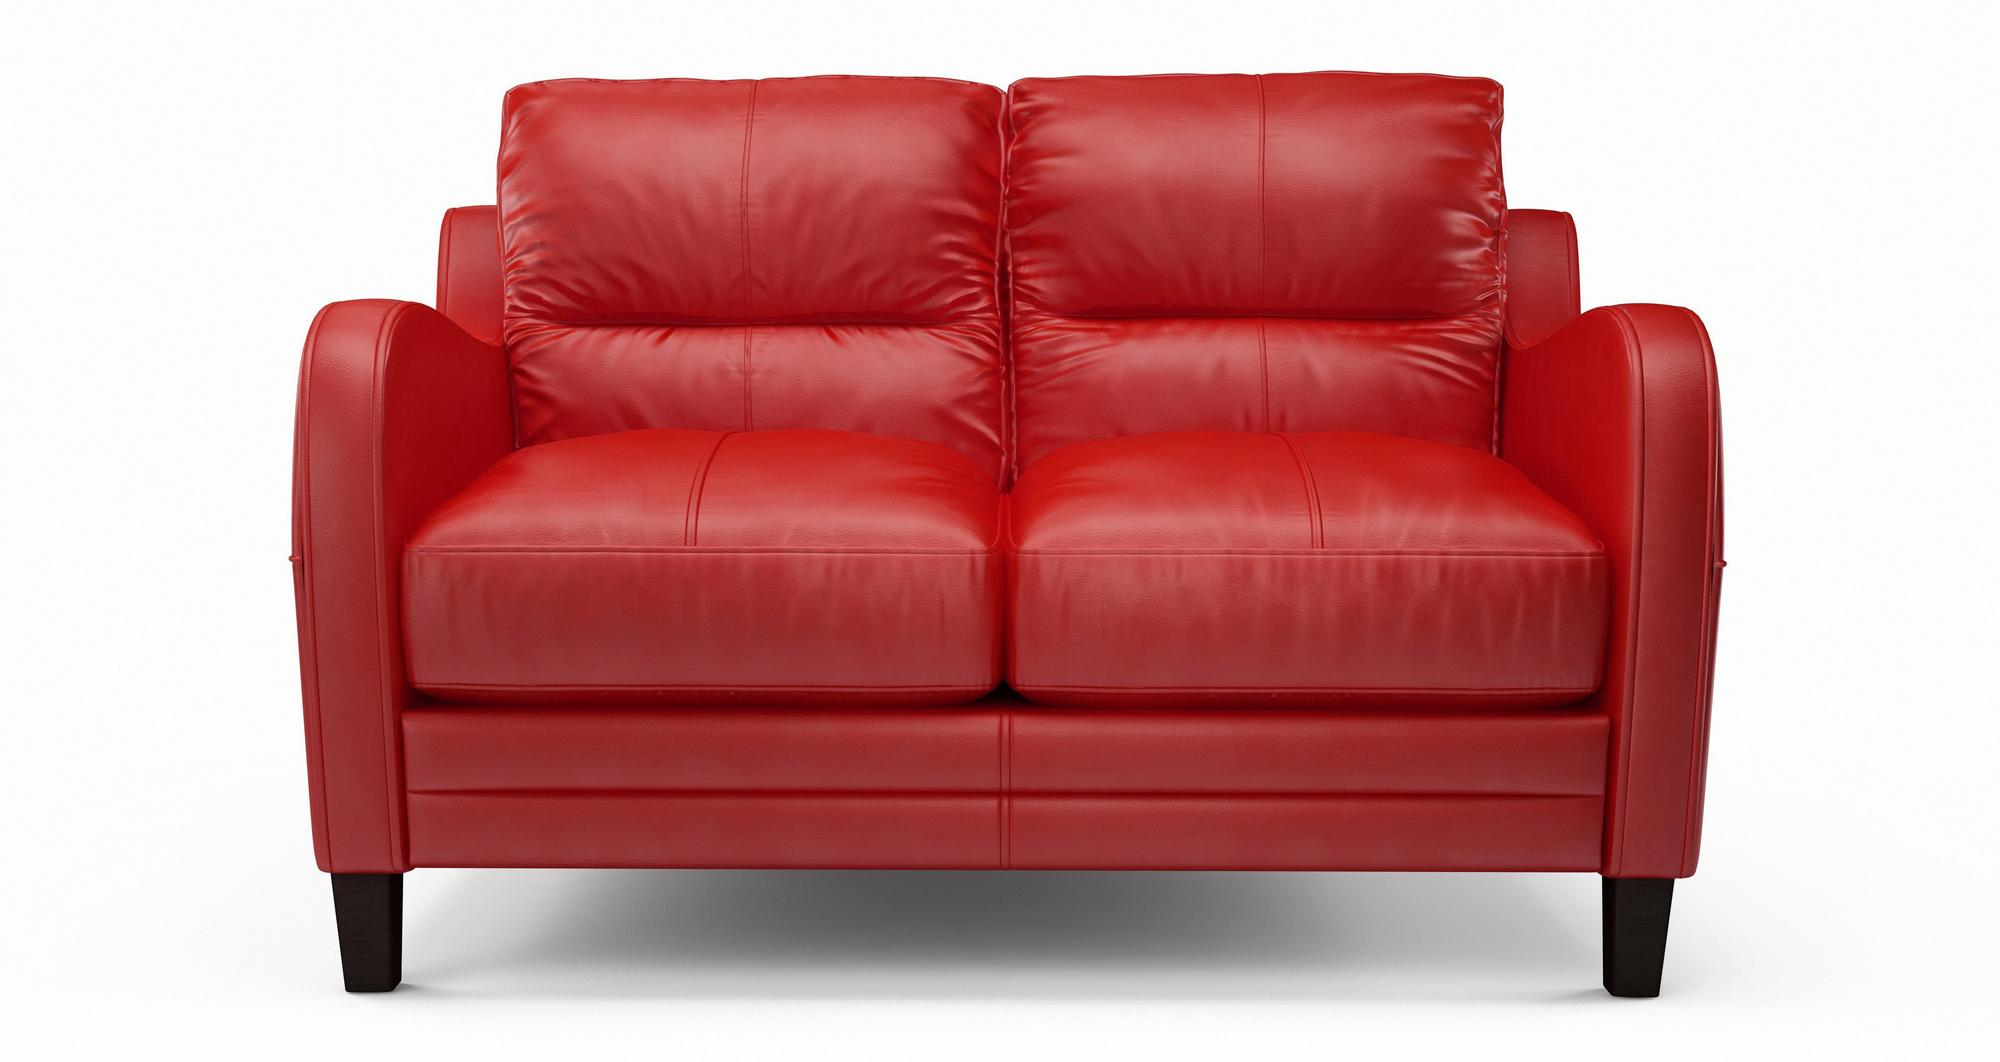 DFS Perk Red Leather Furniture Set Inc 2 Seater Sofa